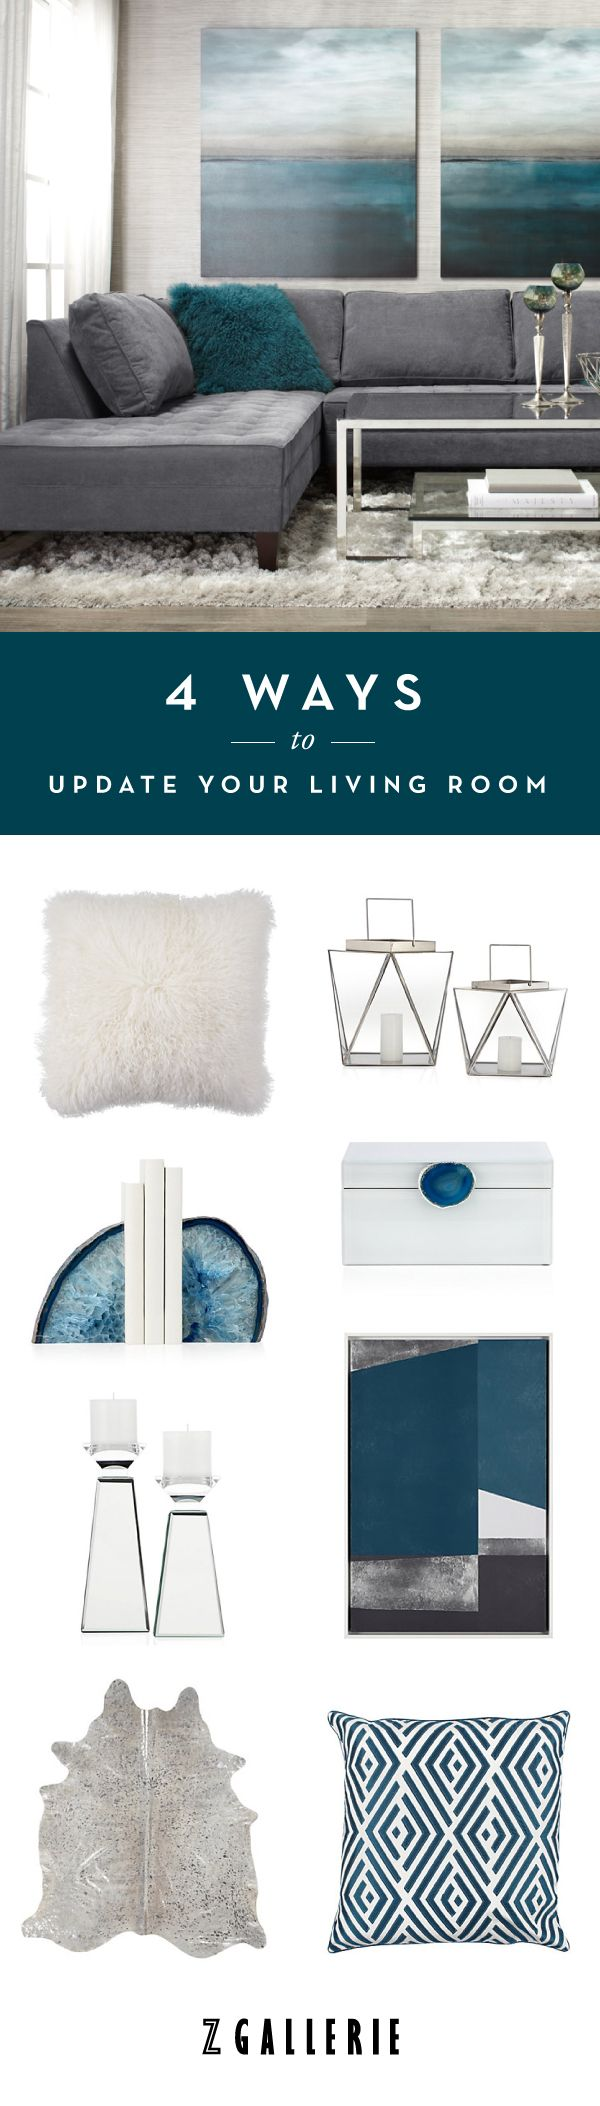 Explore Our NEW Small Spaces, BIG Impact Guide To Get Simple Decorating  Tips For The